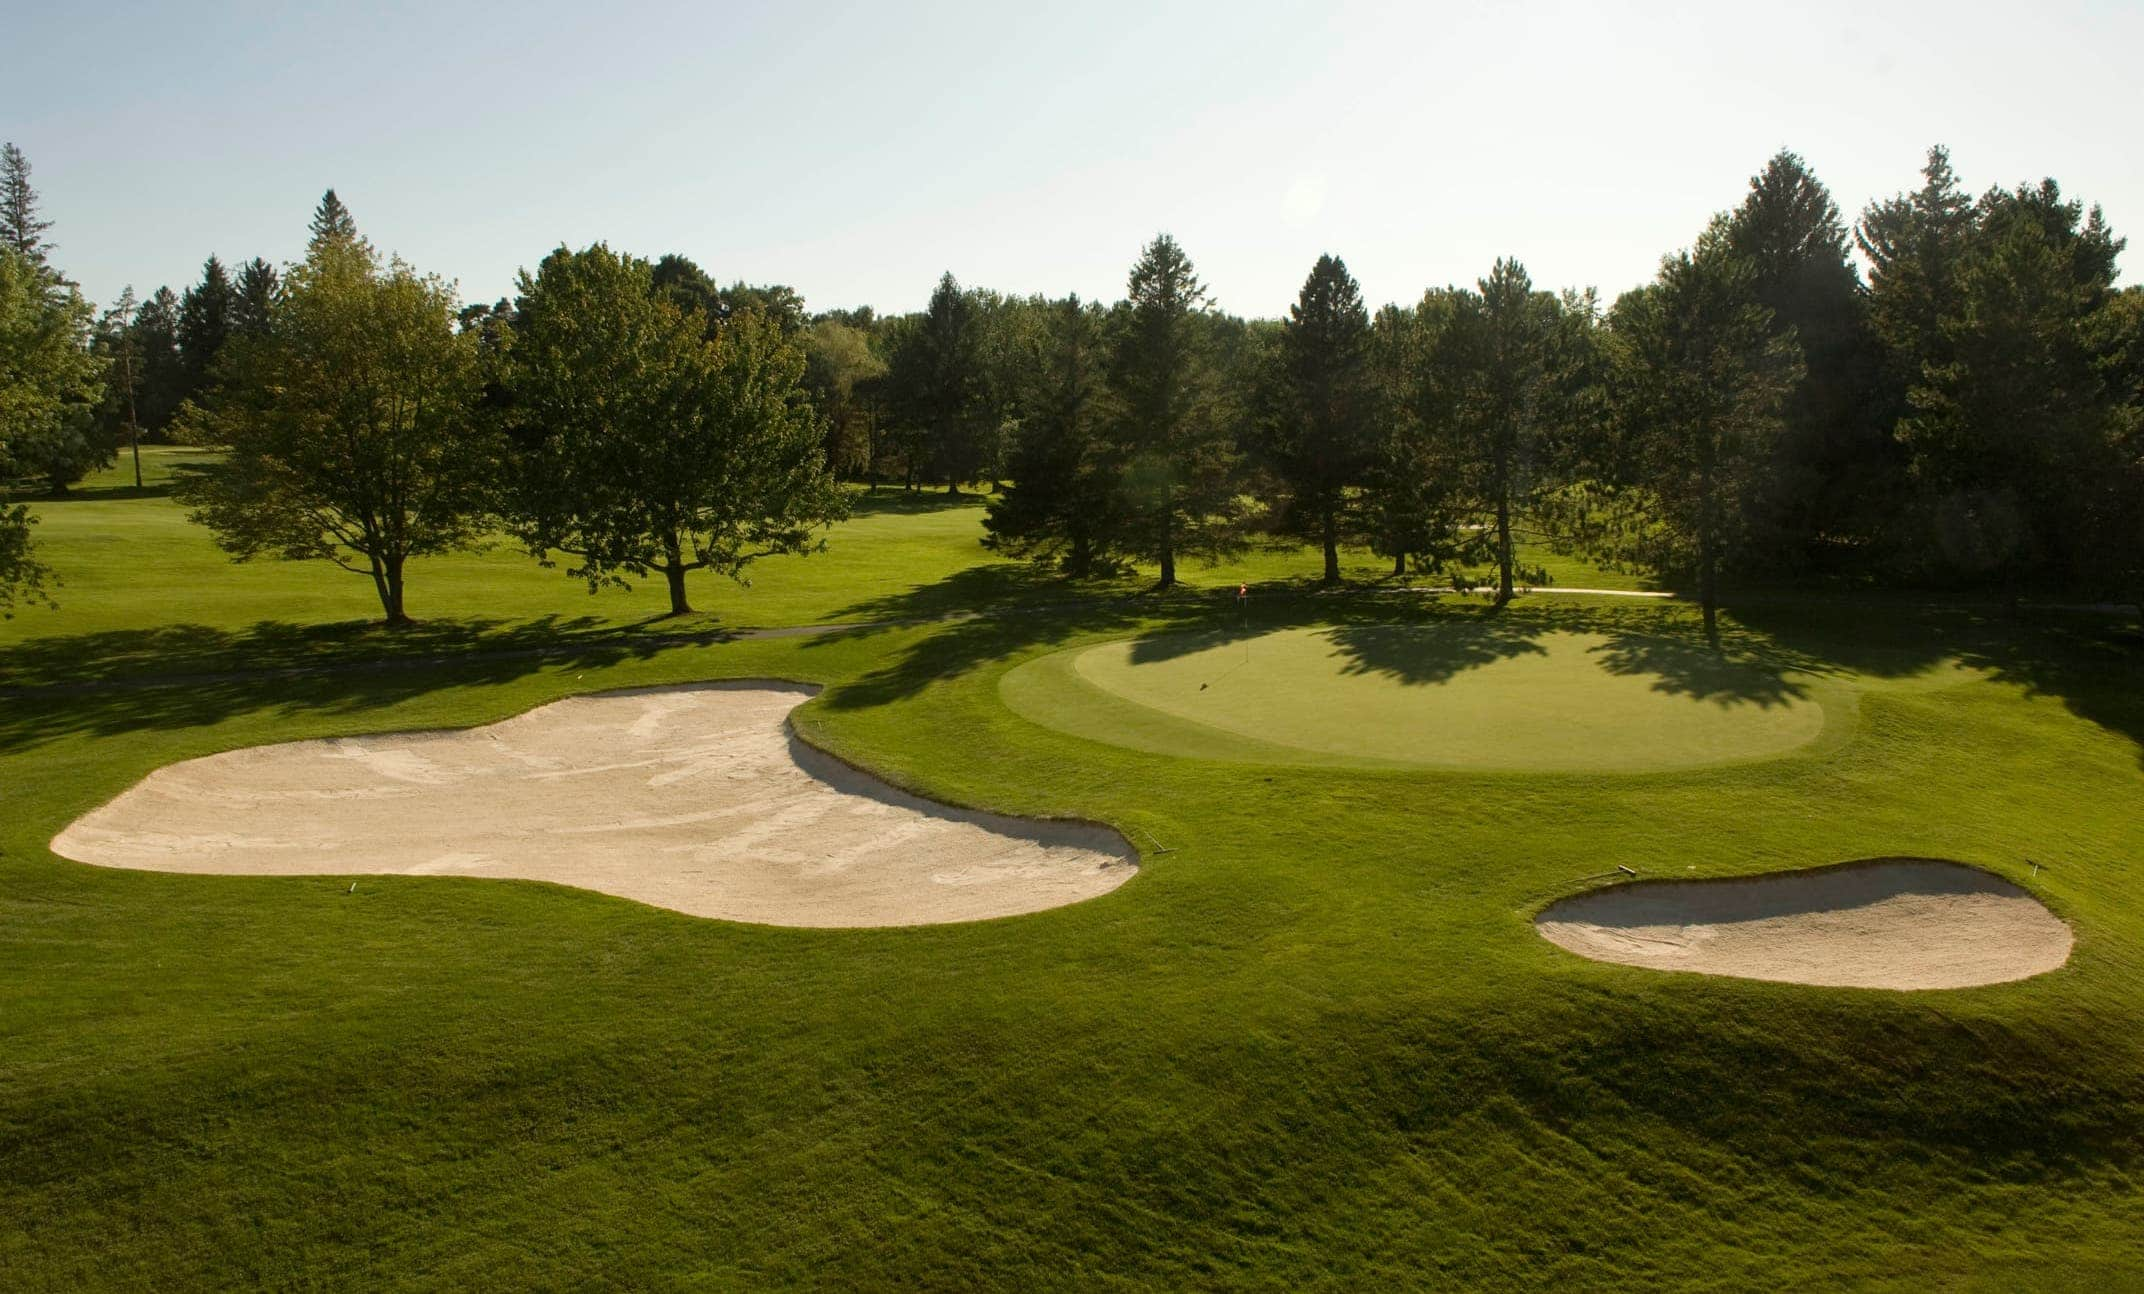 The Royal Ottawa Golf Club